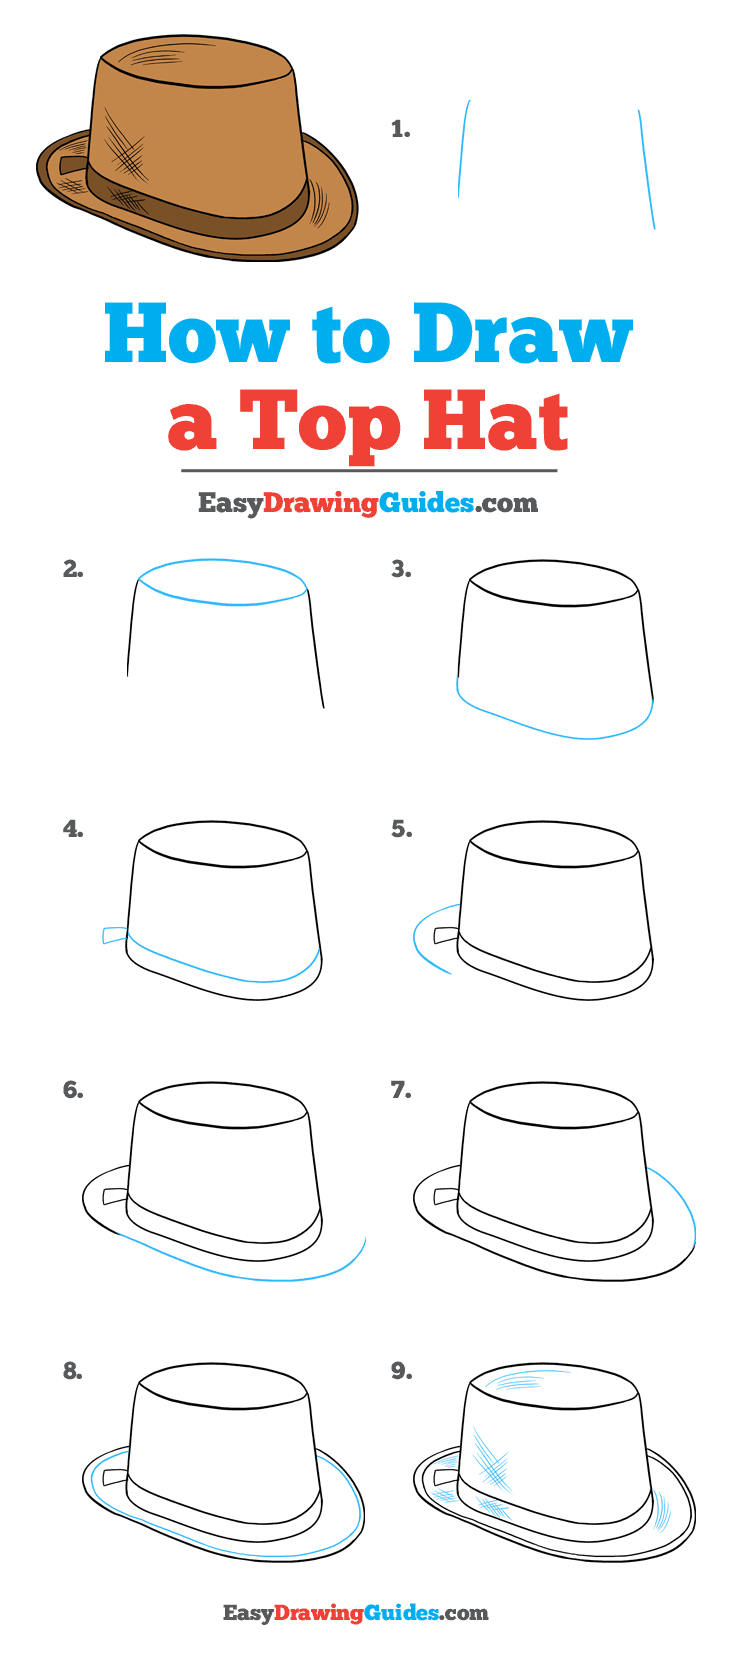 How to Draw Top Hat